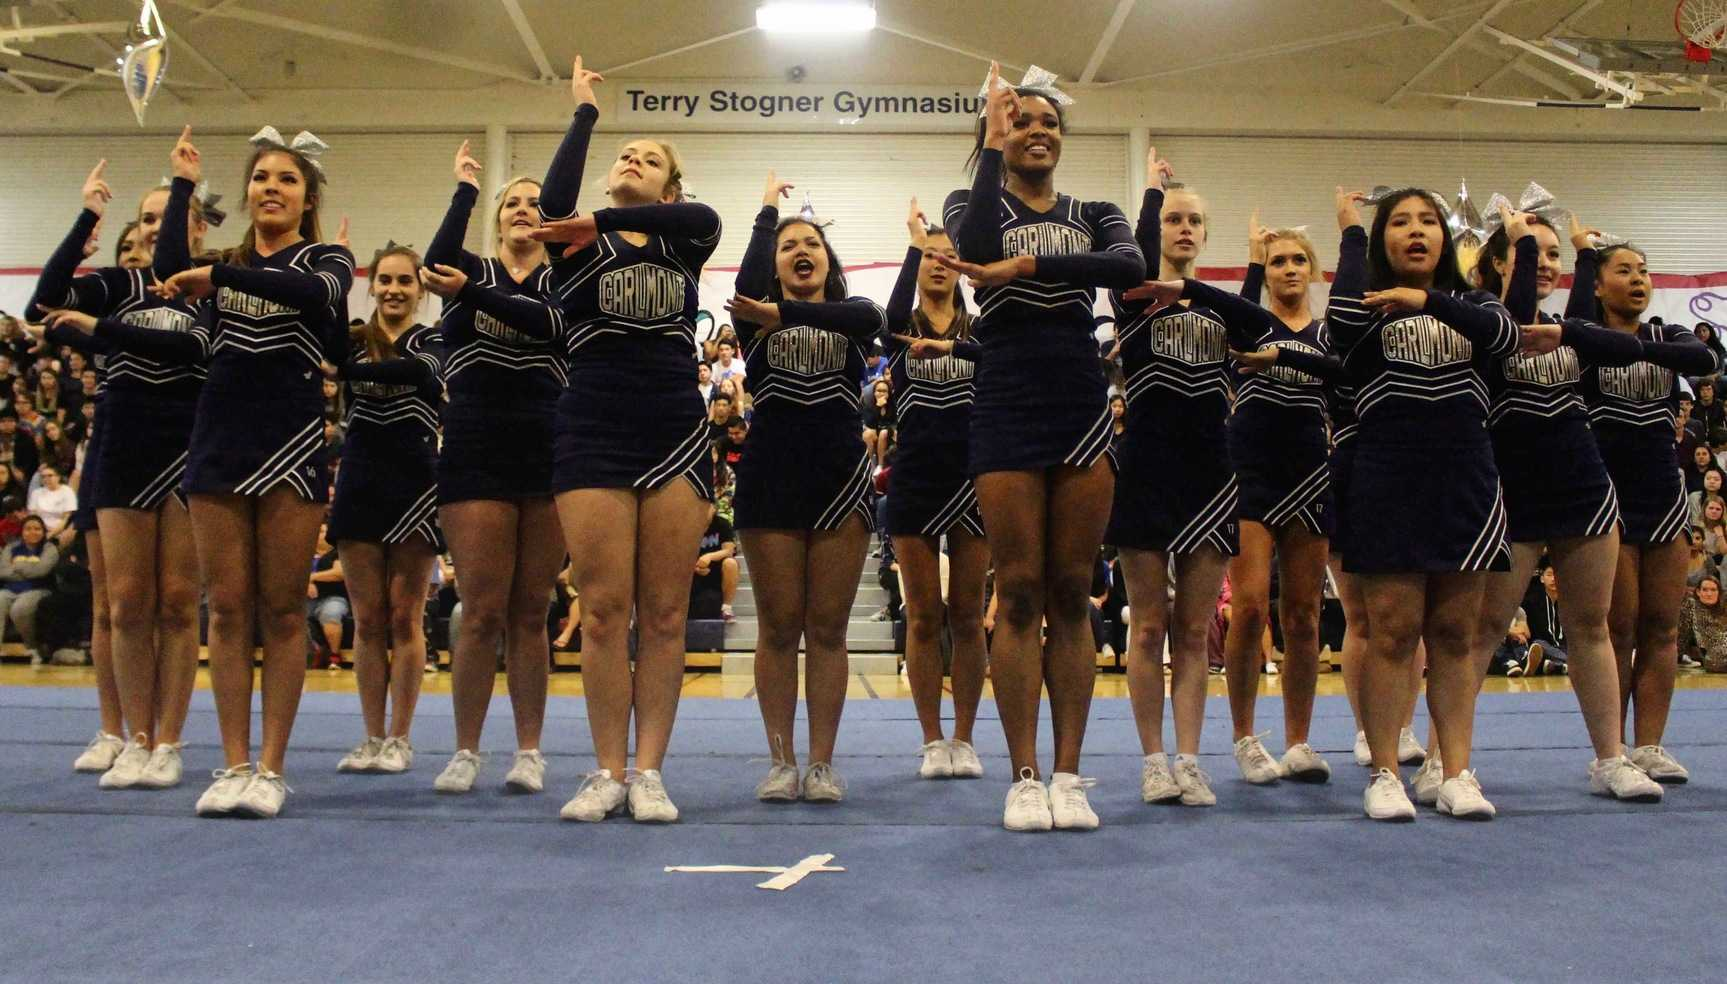 Cheer+performs+their+routine+with+their+new++and+existing+members.